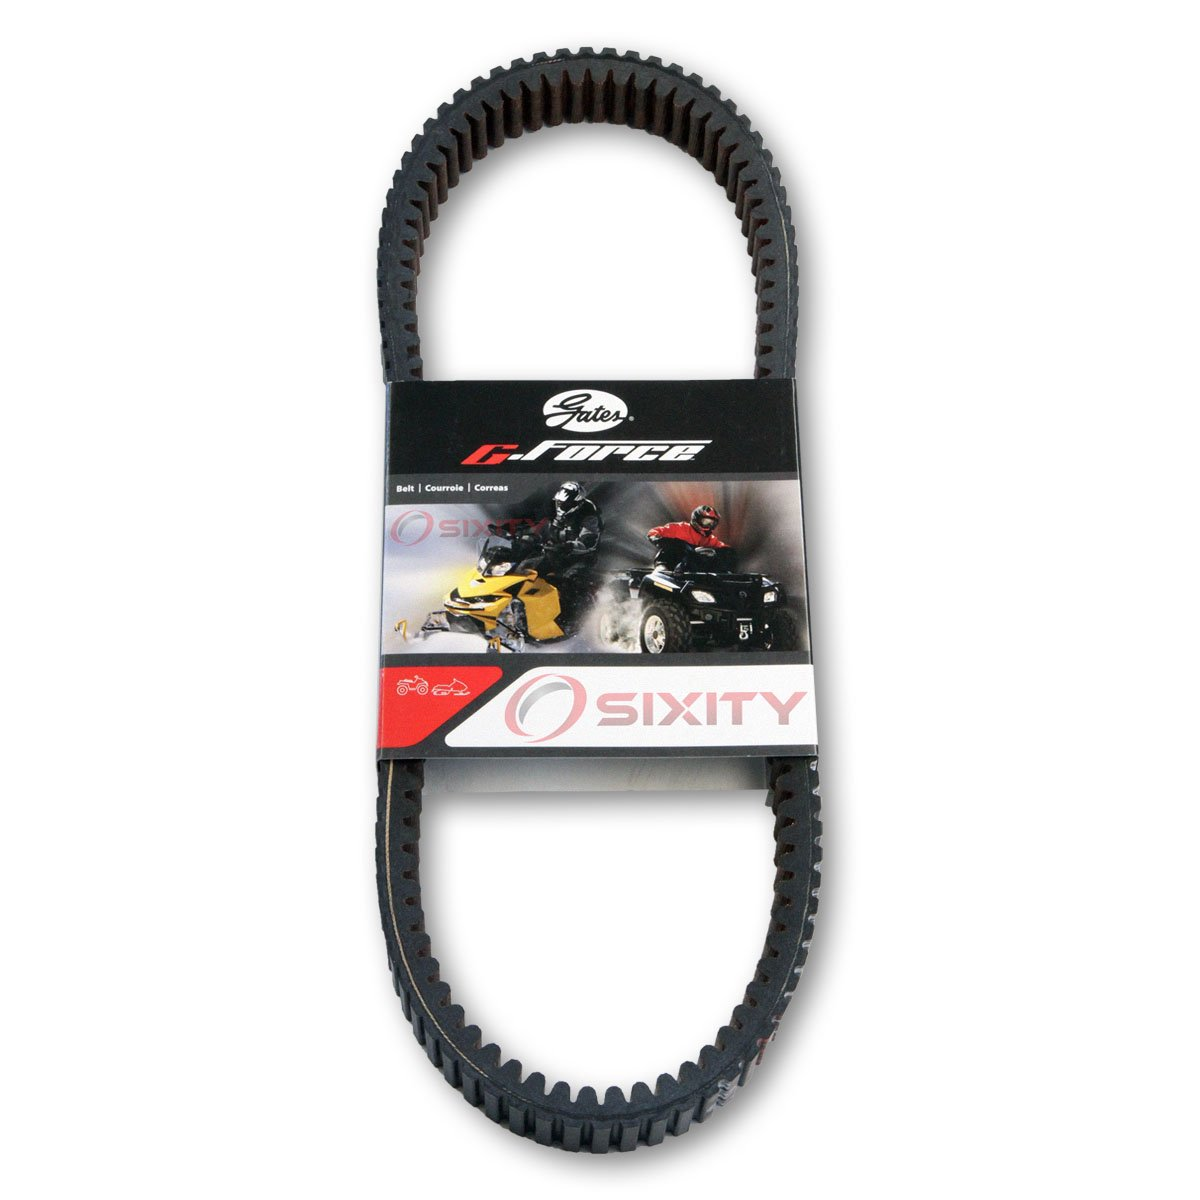 Gates Drive Belt 2013-2014 Polaris Ranger 800 EFI G-Force Kevlar Aramid CVT OEM Upgrade Heavy Duty